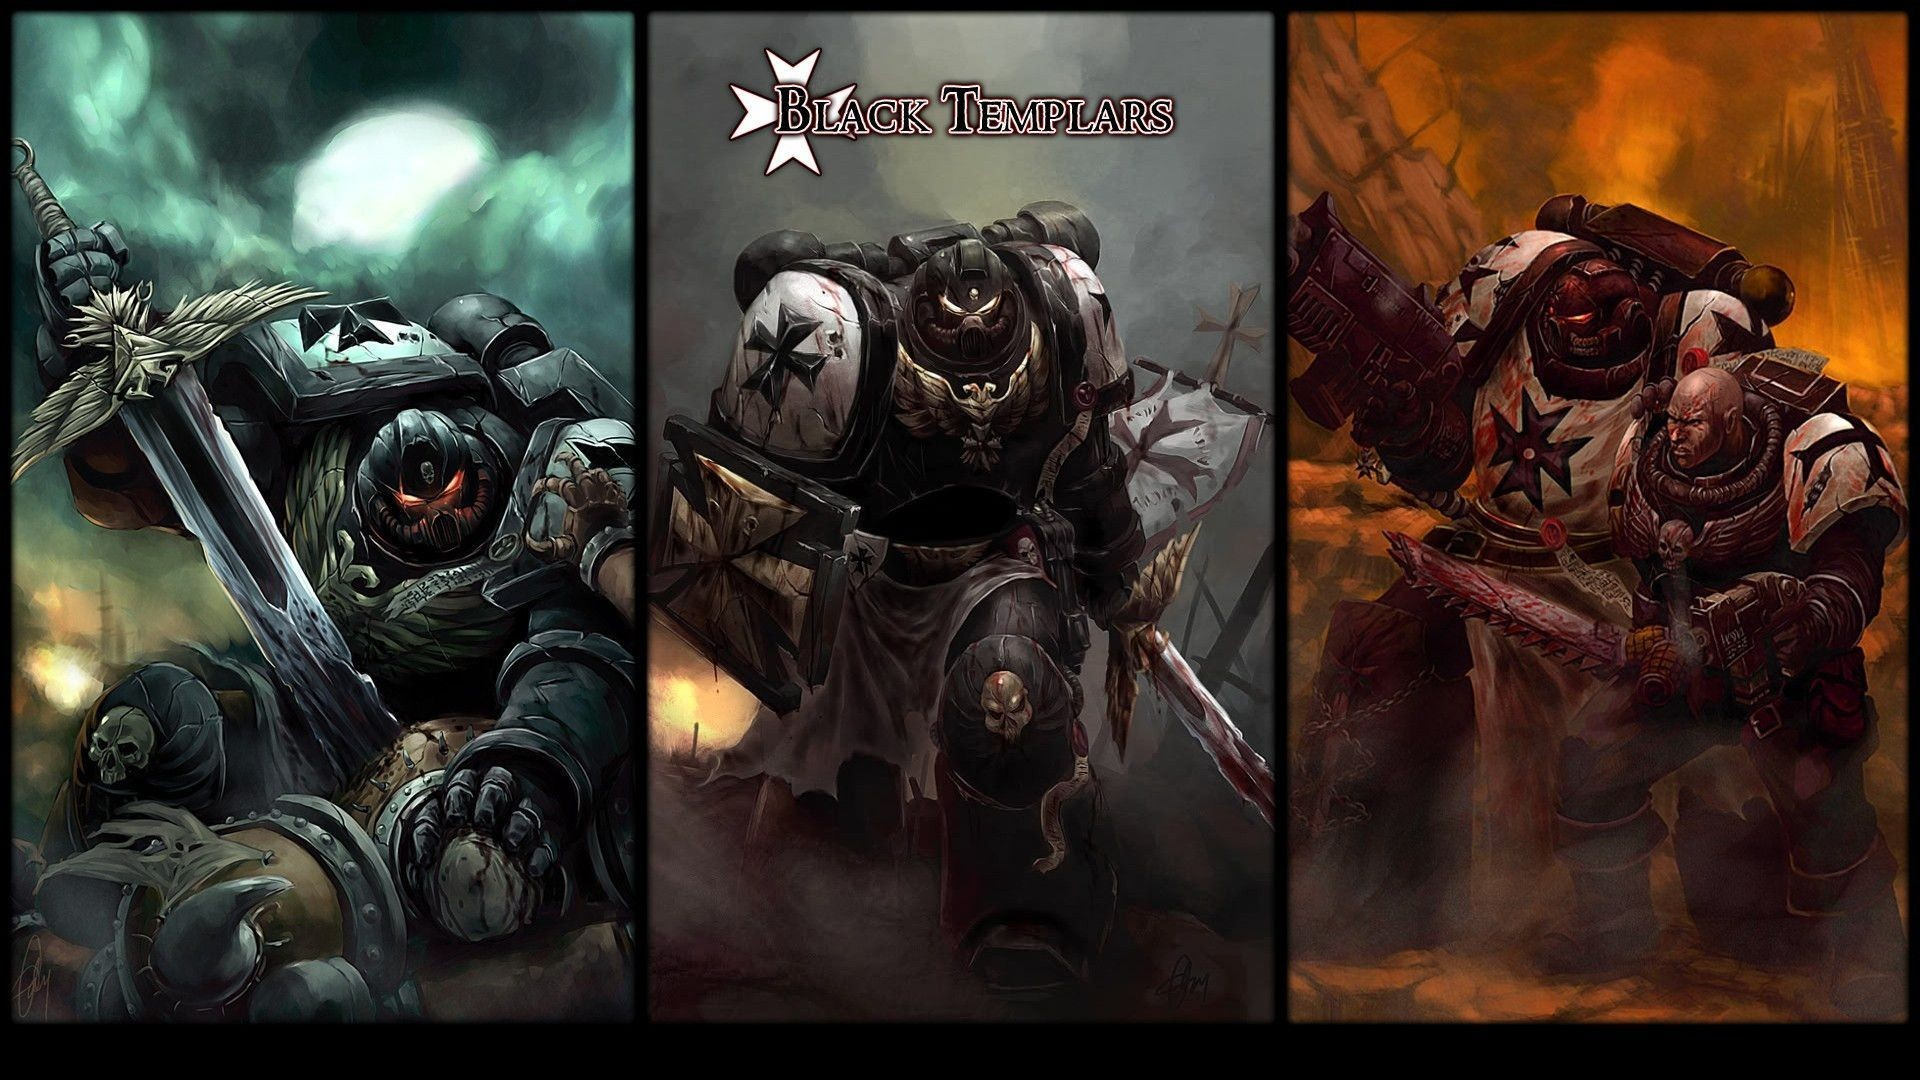 1920x1080 Warhammer 40K Chaos HD Wallpaper | Wallpapers | Pinterest | Hd wallpaper